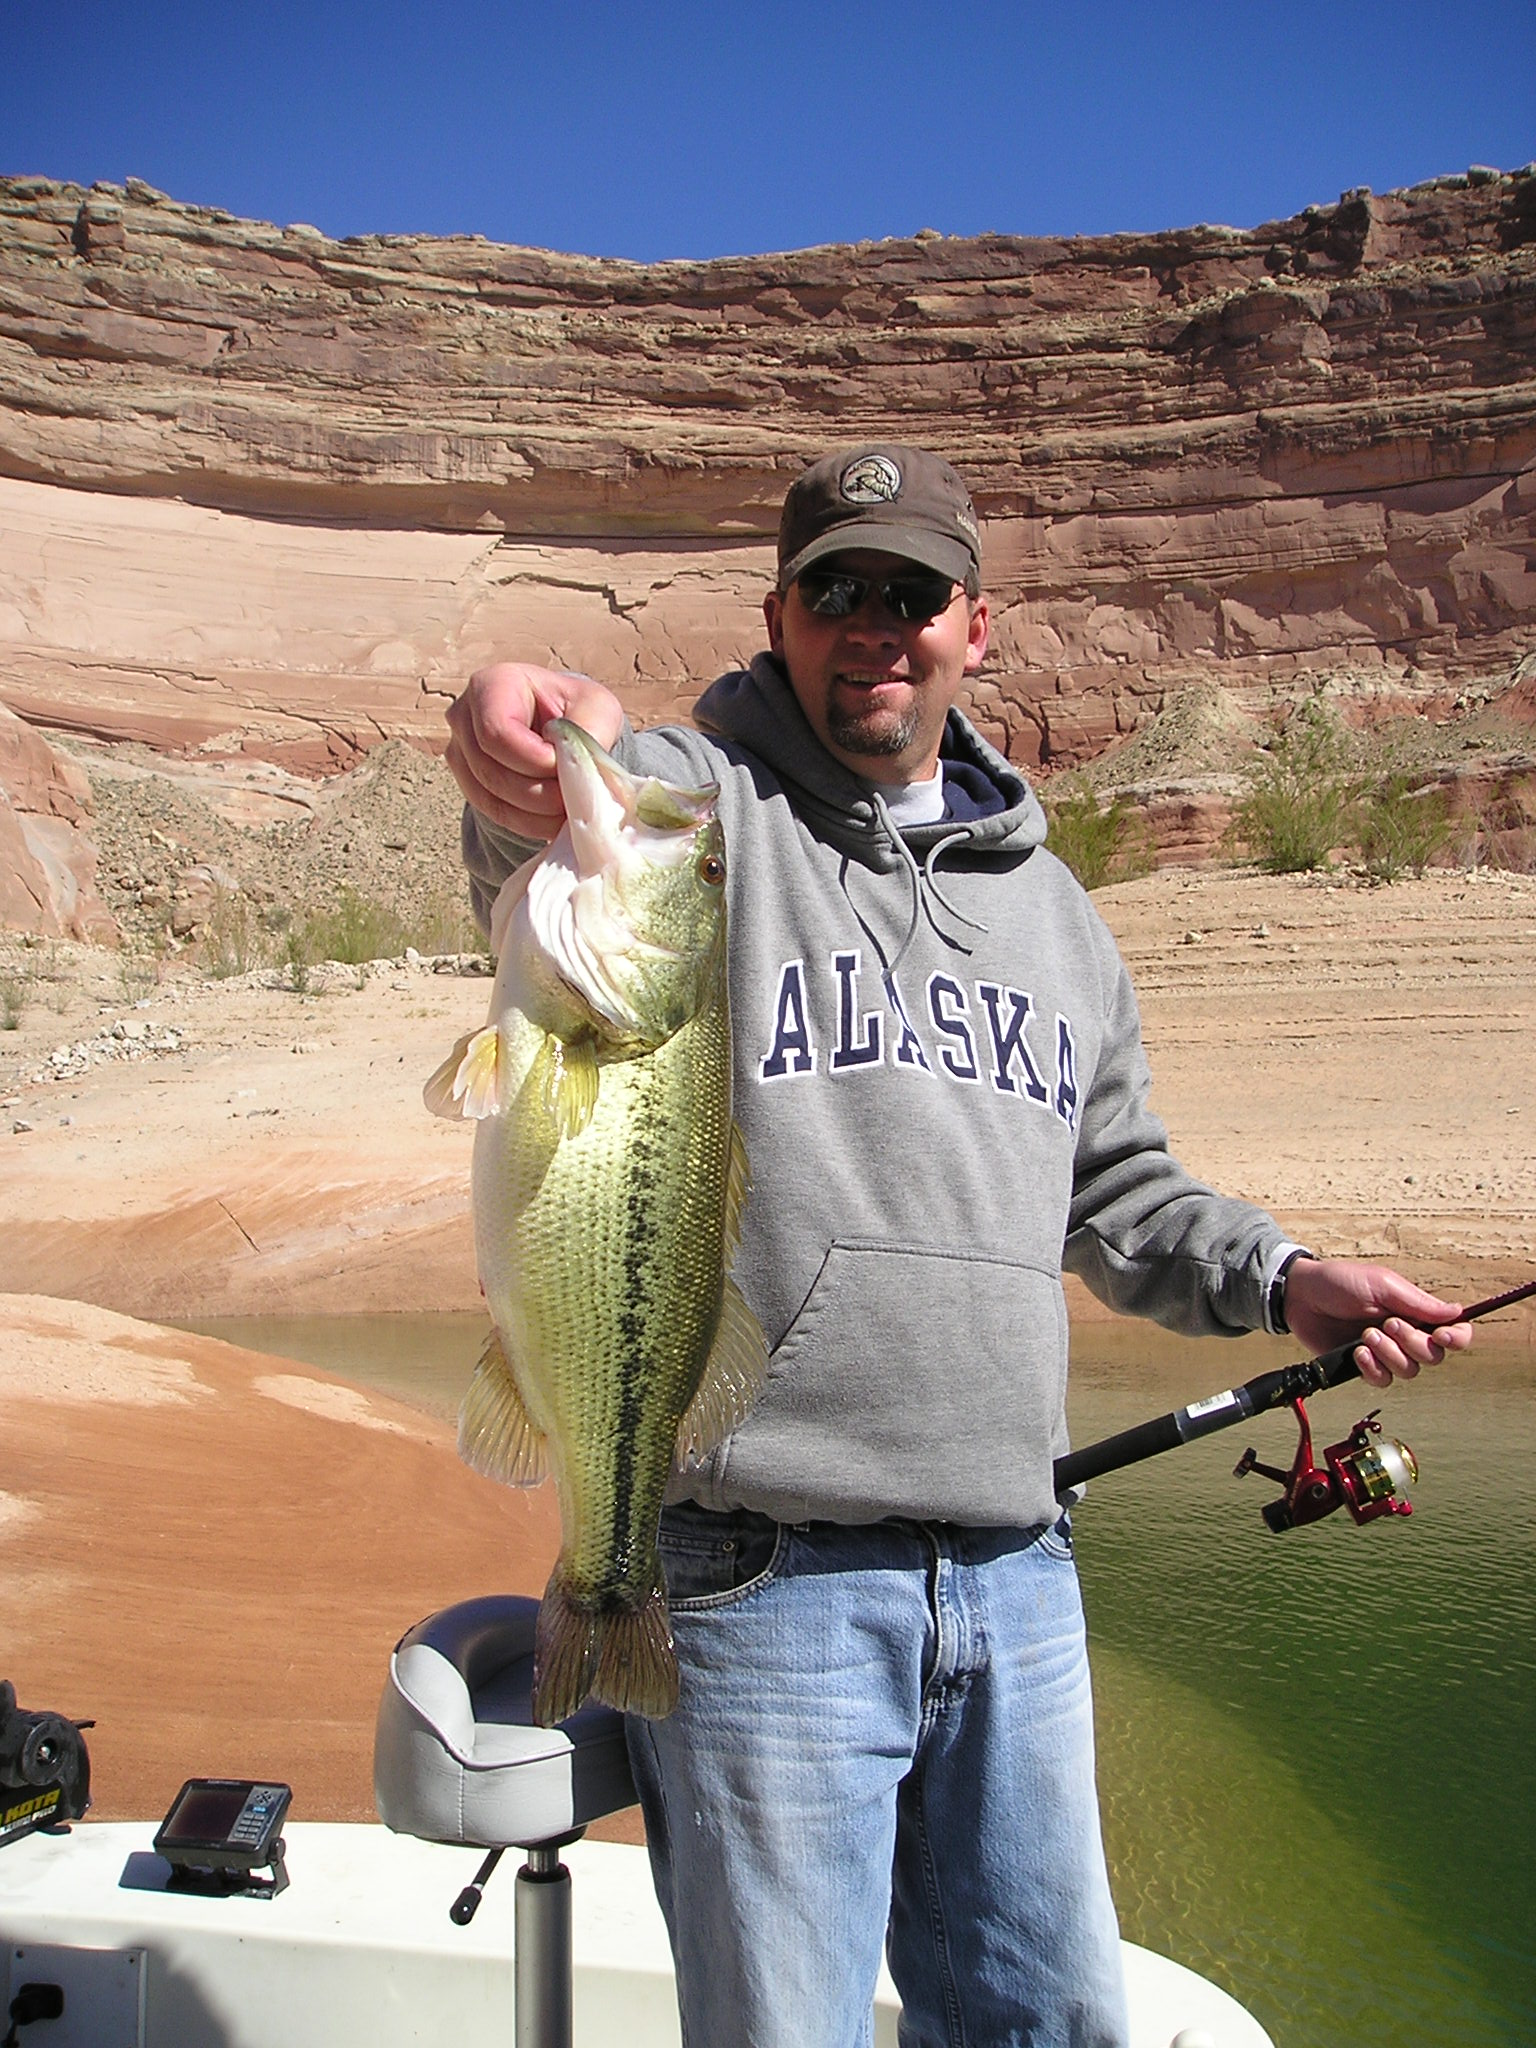 MIke's B-day Present 4-08 5.6# Largemouth at Lake Powell